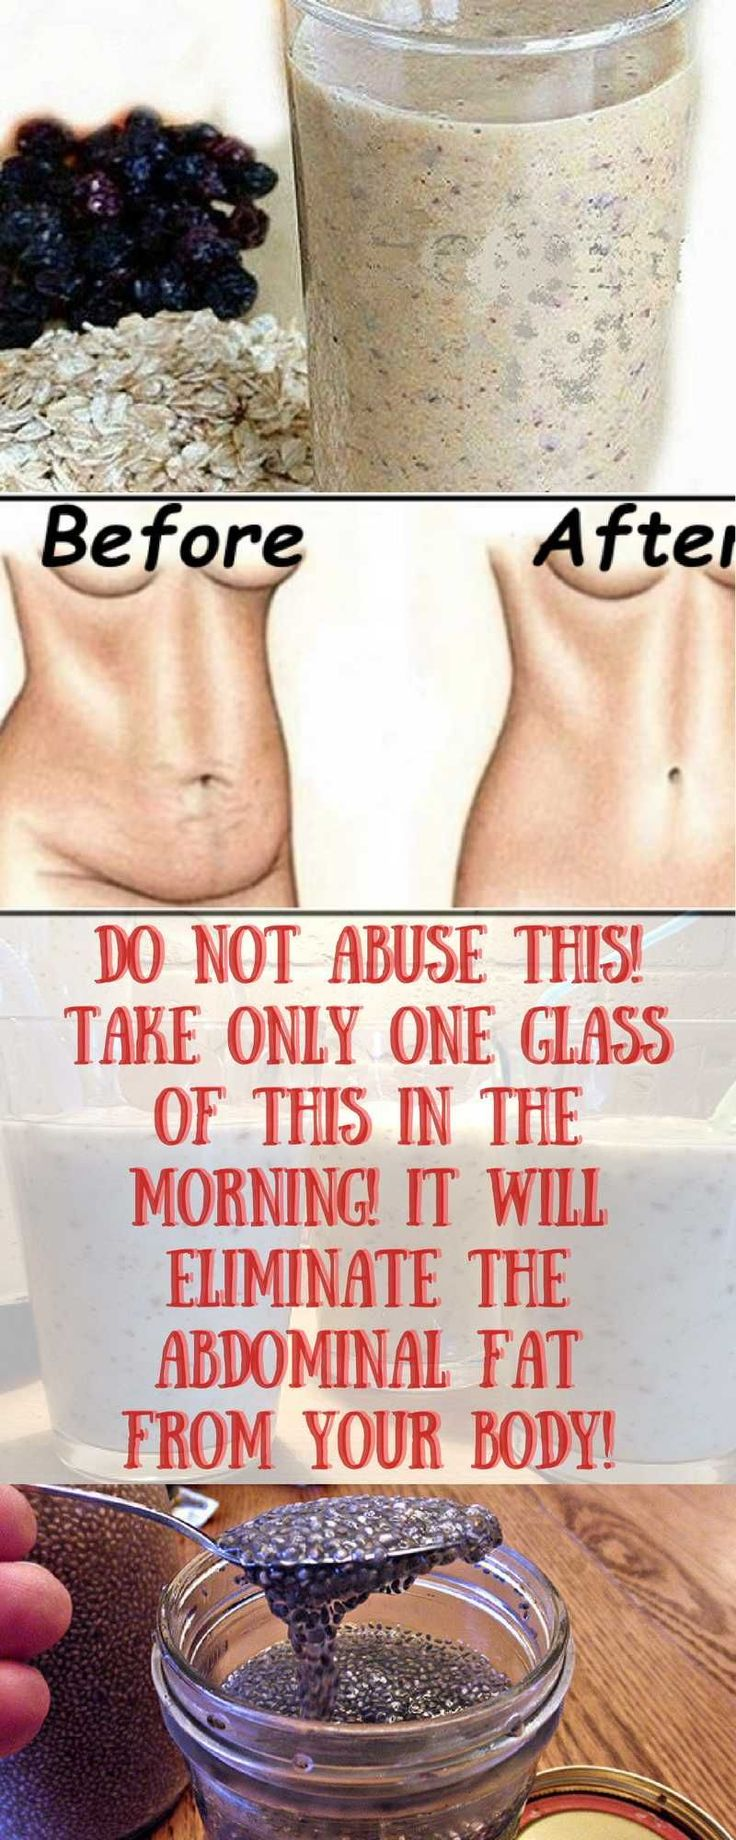 /DO NOT ABUSE THIS! TAKE ONLY ONE GLASS OF THIS IN THE MORNING! IT WILL ELIMINATE THE ABDOMINAL FAT FROM YOUR BODY!///